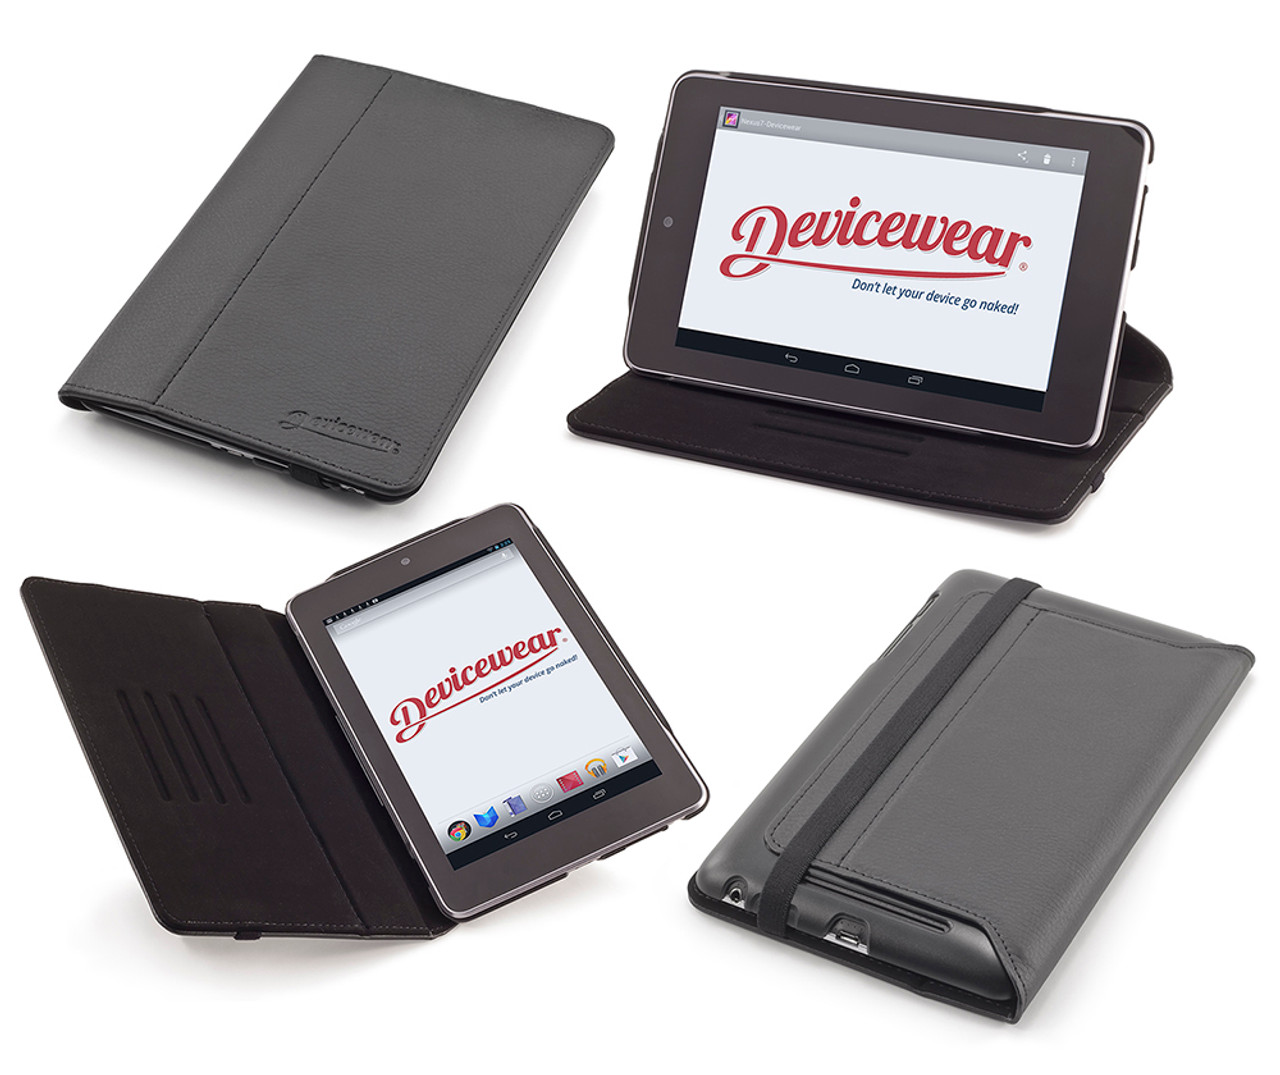 The Ridge By Devicewear Black Vegan Leather Case For The Google Nexus 7